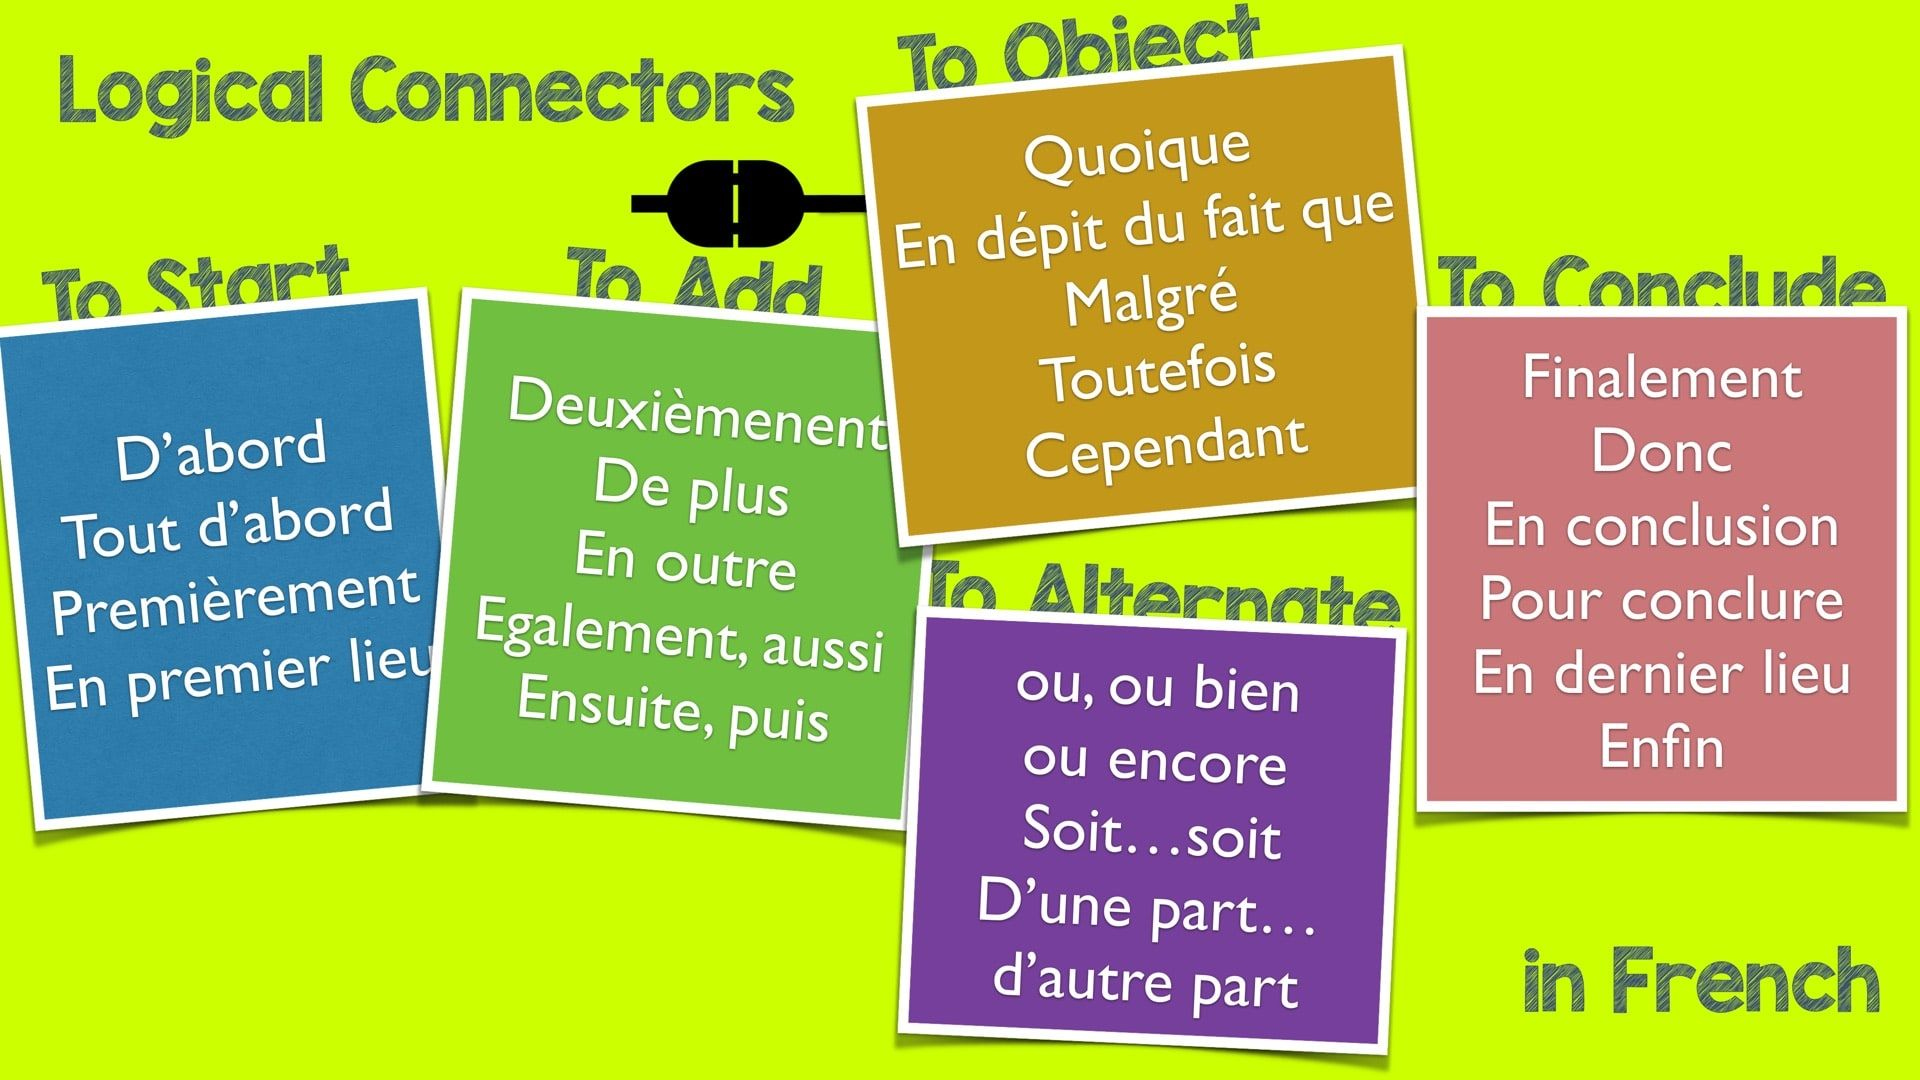 Logical Connectors In French